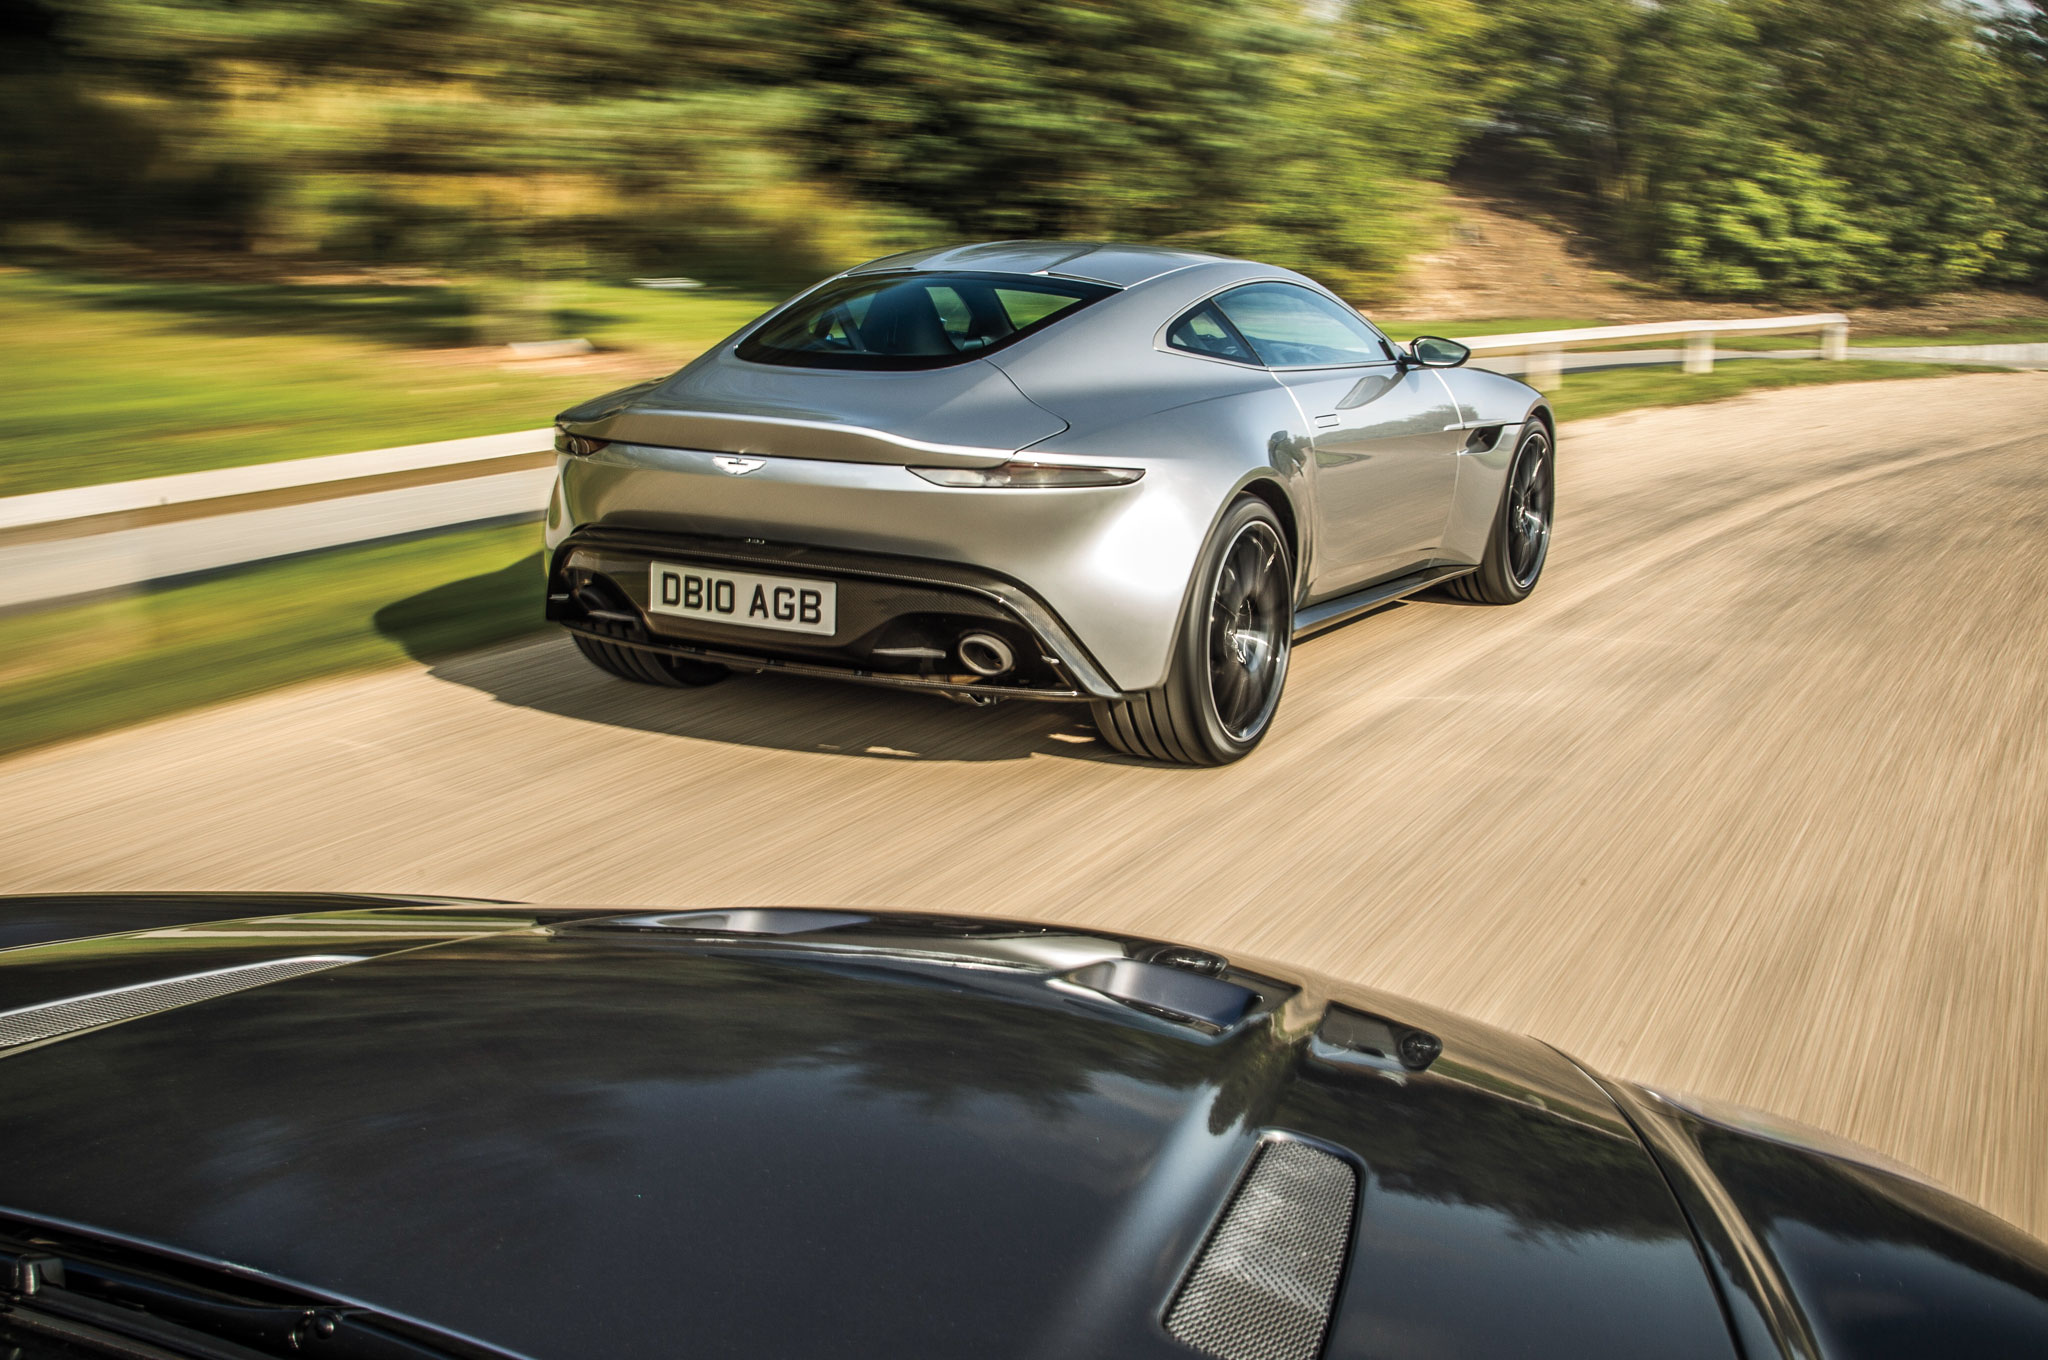 The DB10's beautifully thin and elegant back end wraps around to two huge, aggressive rear haunches.